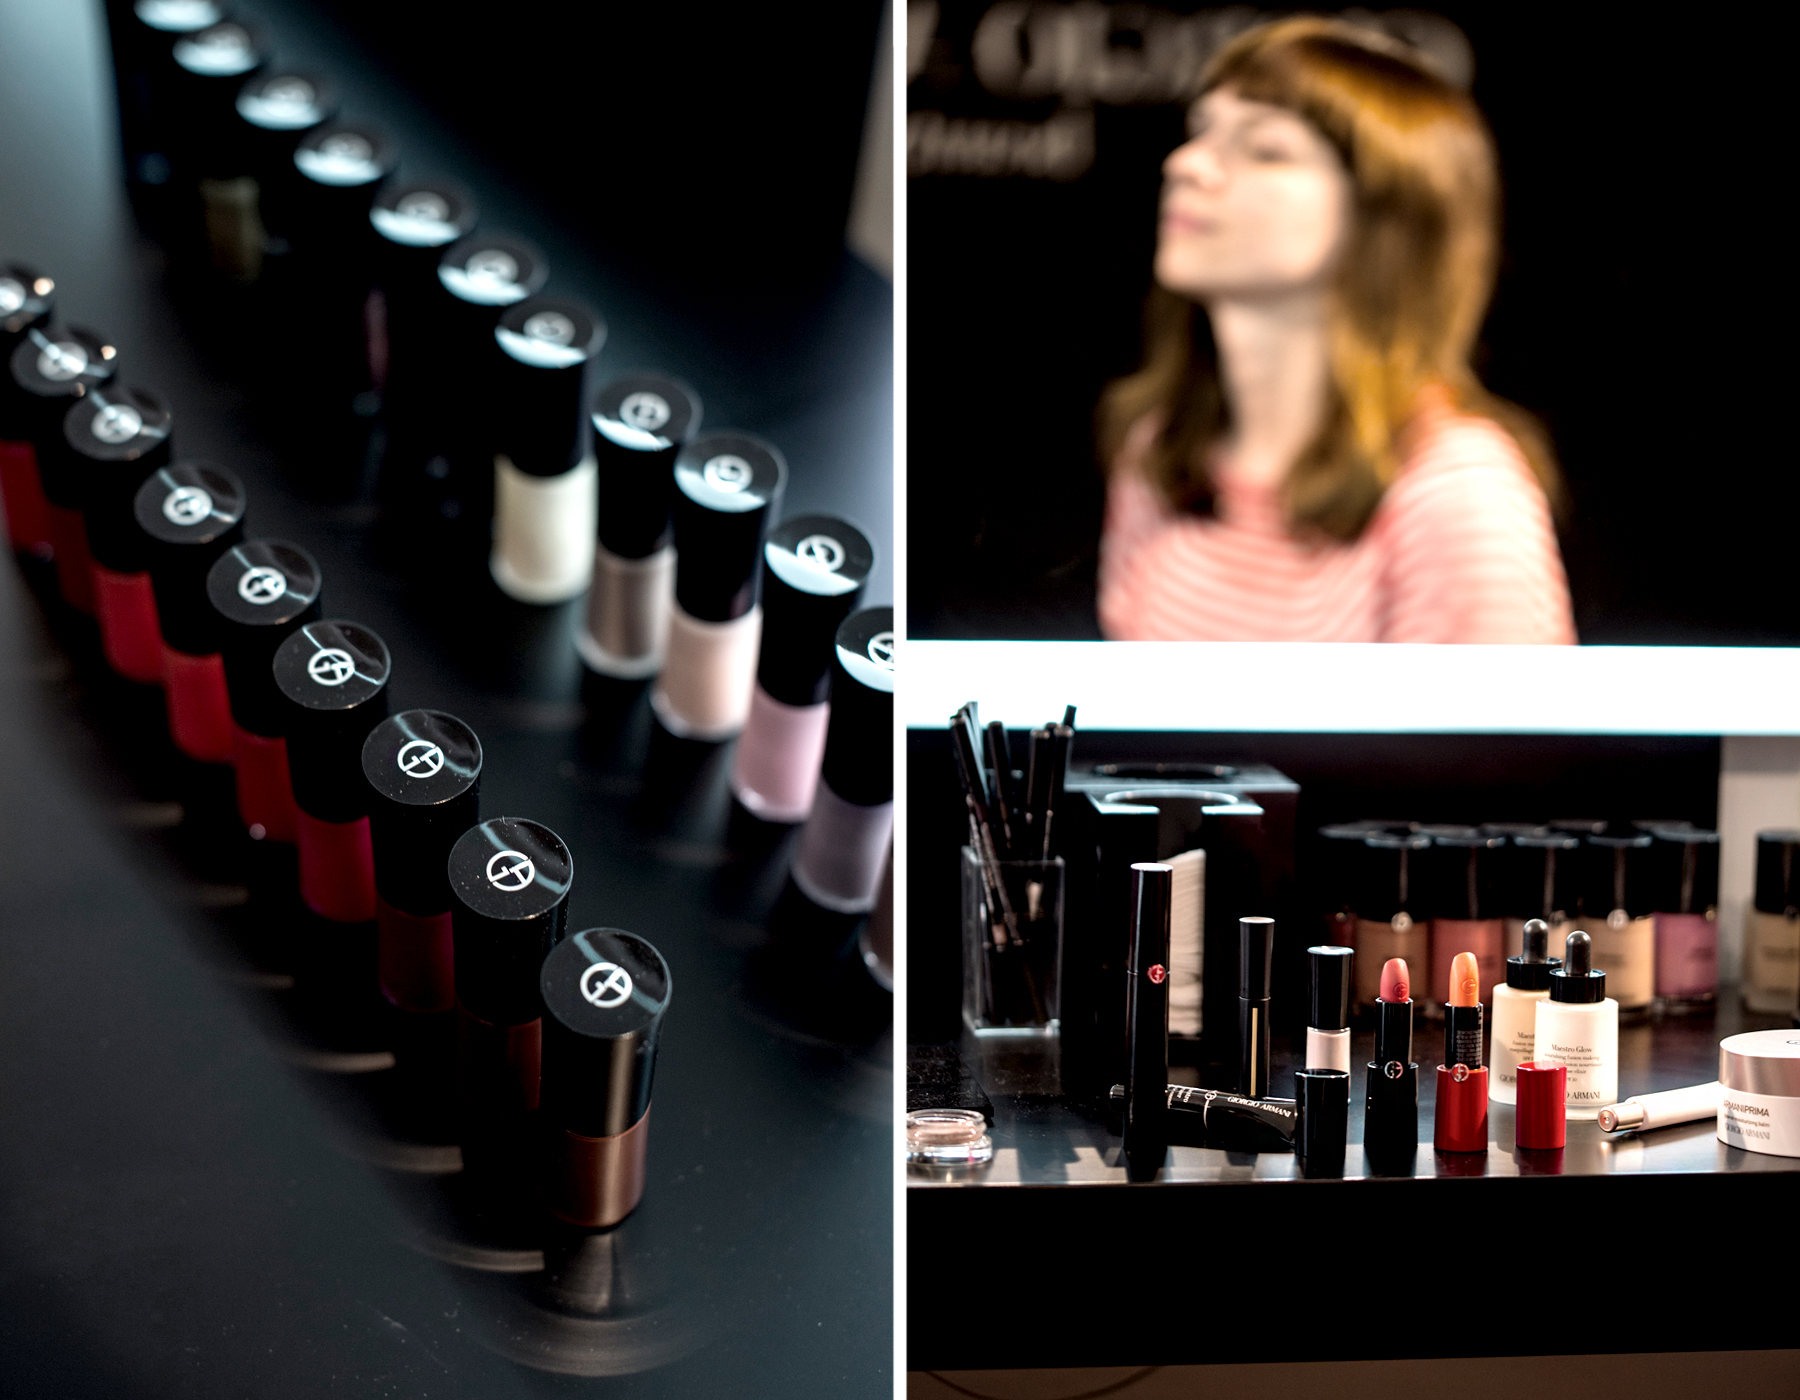 armani beauty giorgio armani make up shoot paris beautylab style cool spring summer newin lipstick rouge beautyblogger cats &dogs ricarda schernus fashionblogger berlin düsseldorf 5